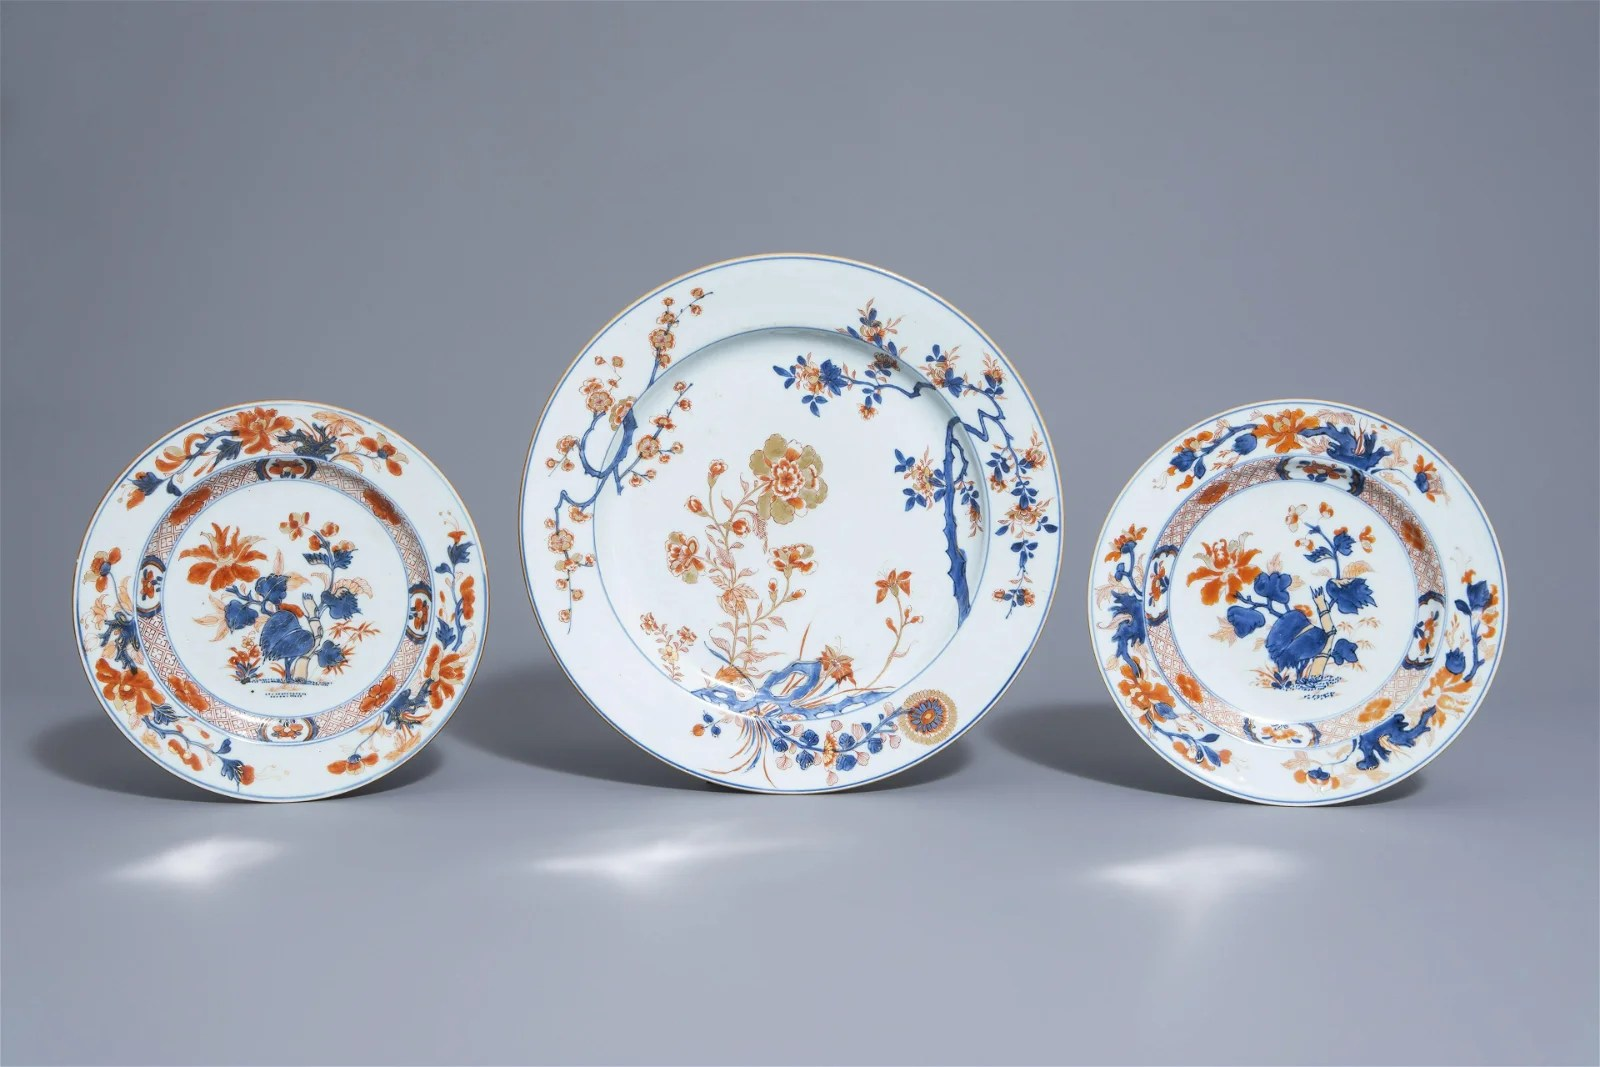 A Chinese Imari style charger and two plates with